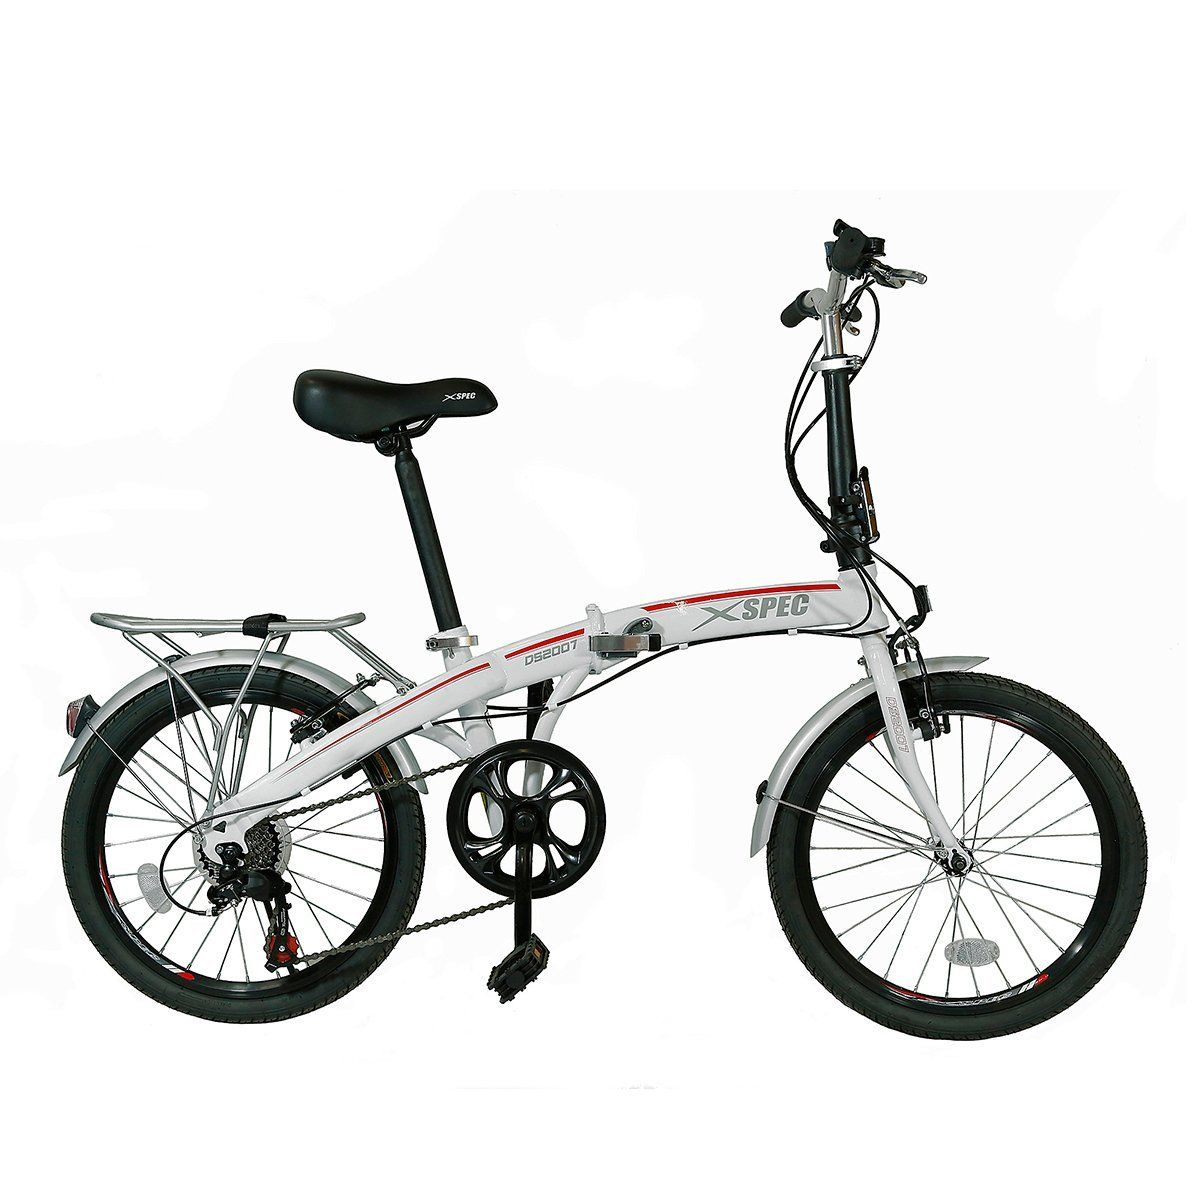 Xspec 20 7 Speed City Folding Compact Bike Bicycle Urban Commuter